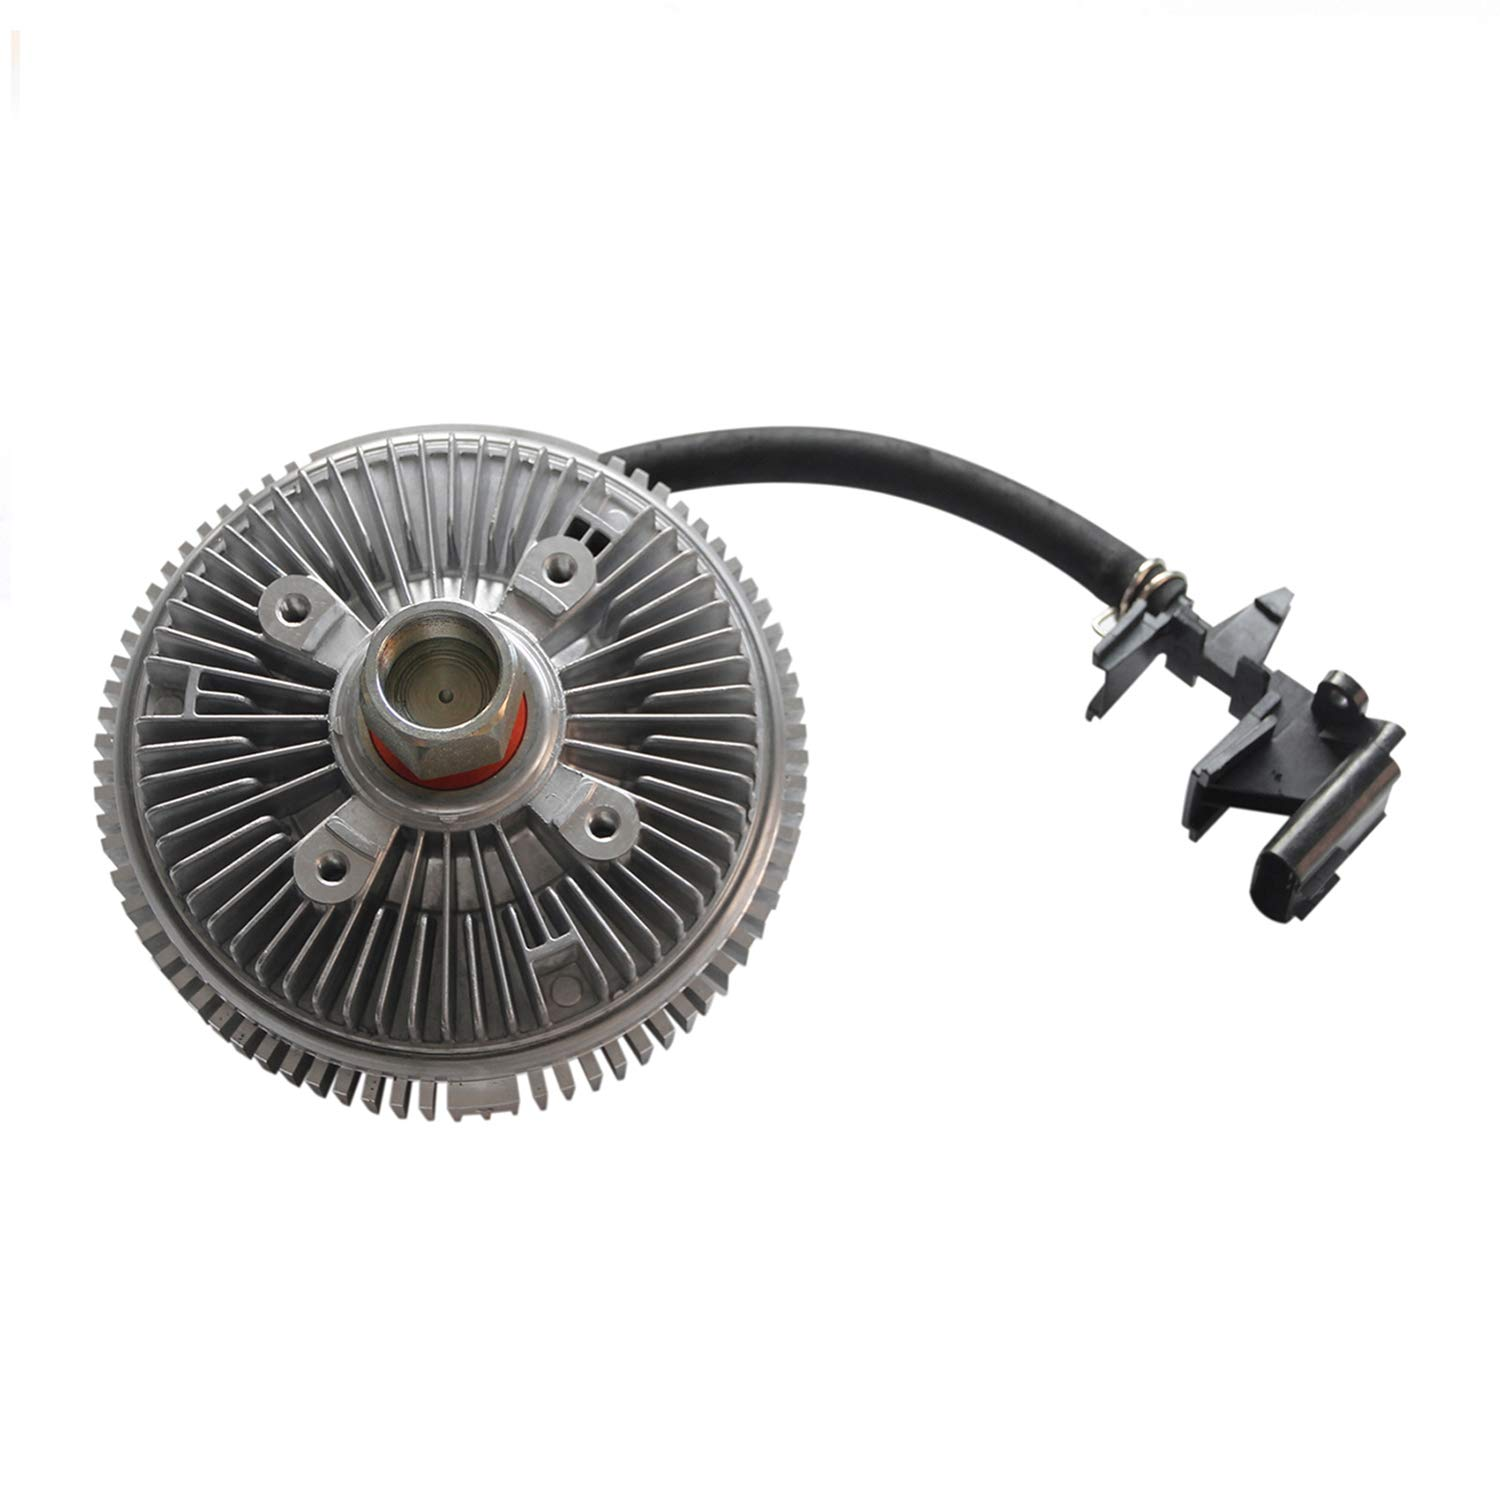 Electric Engine Cooling Radiator Fan Clutch for 2002 2003 2004 2005 2006 2007 2008 2009 Trailblazer Chevy GMC Envoy L6 V8 Replace#3201